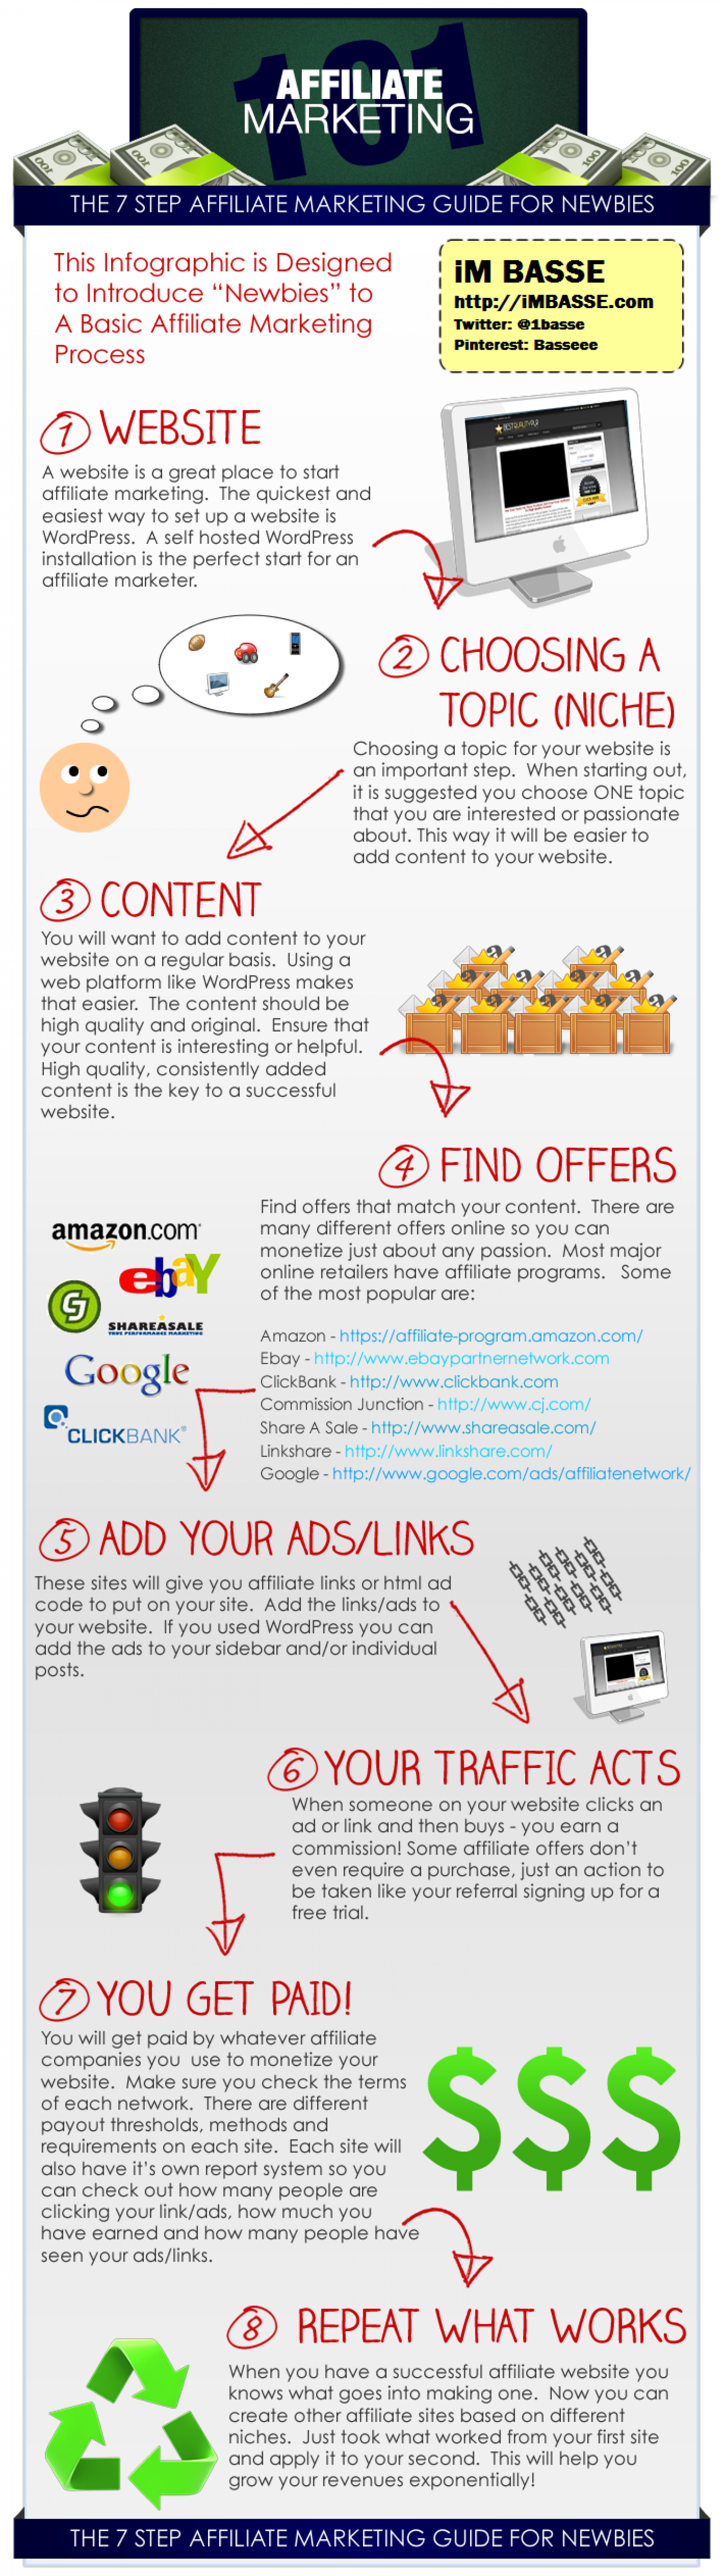 The 7 Step Affiliate Marketing Guide For Newbies Infographic